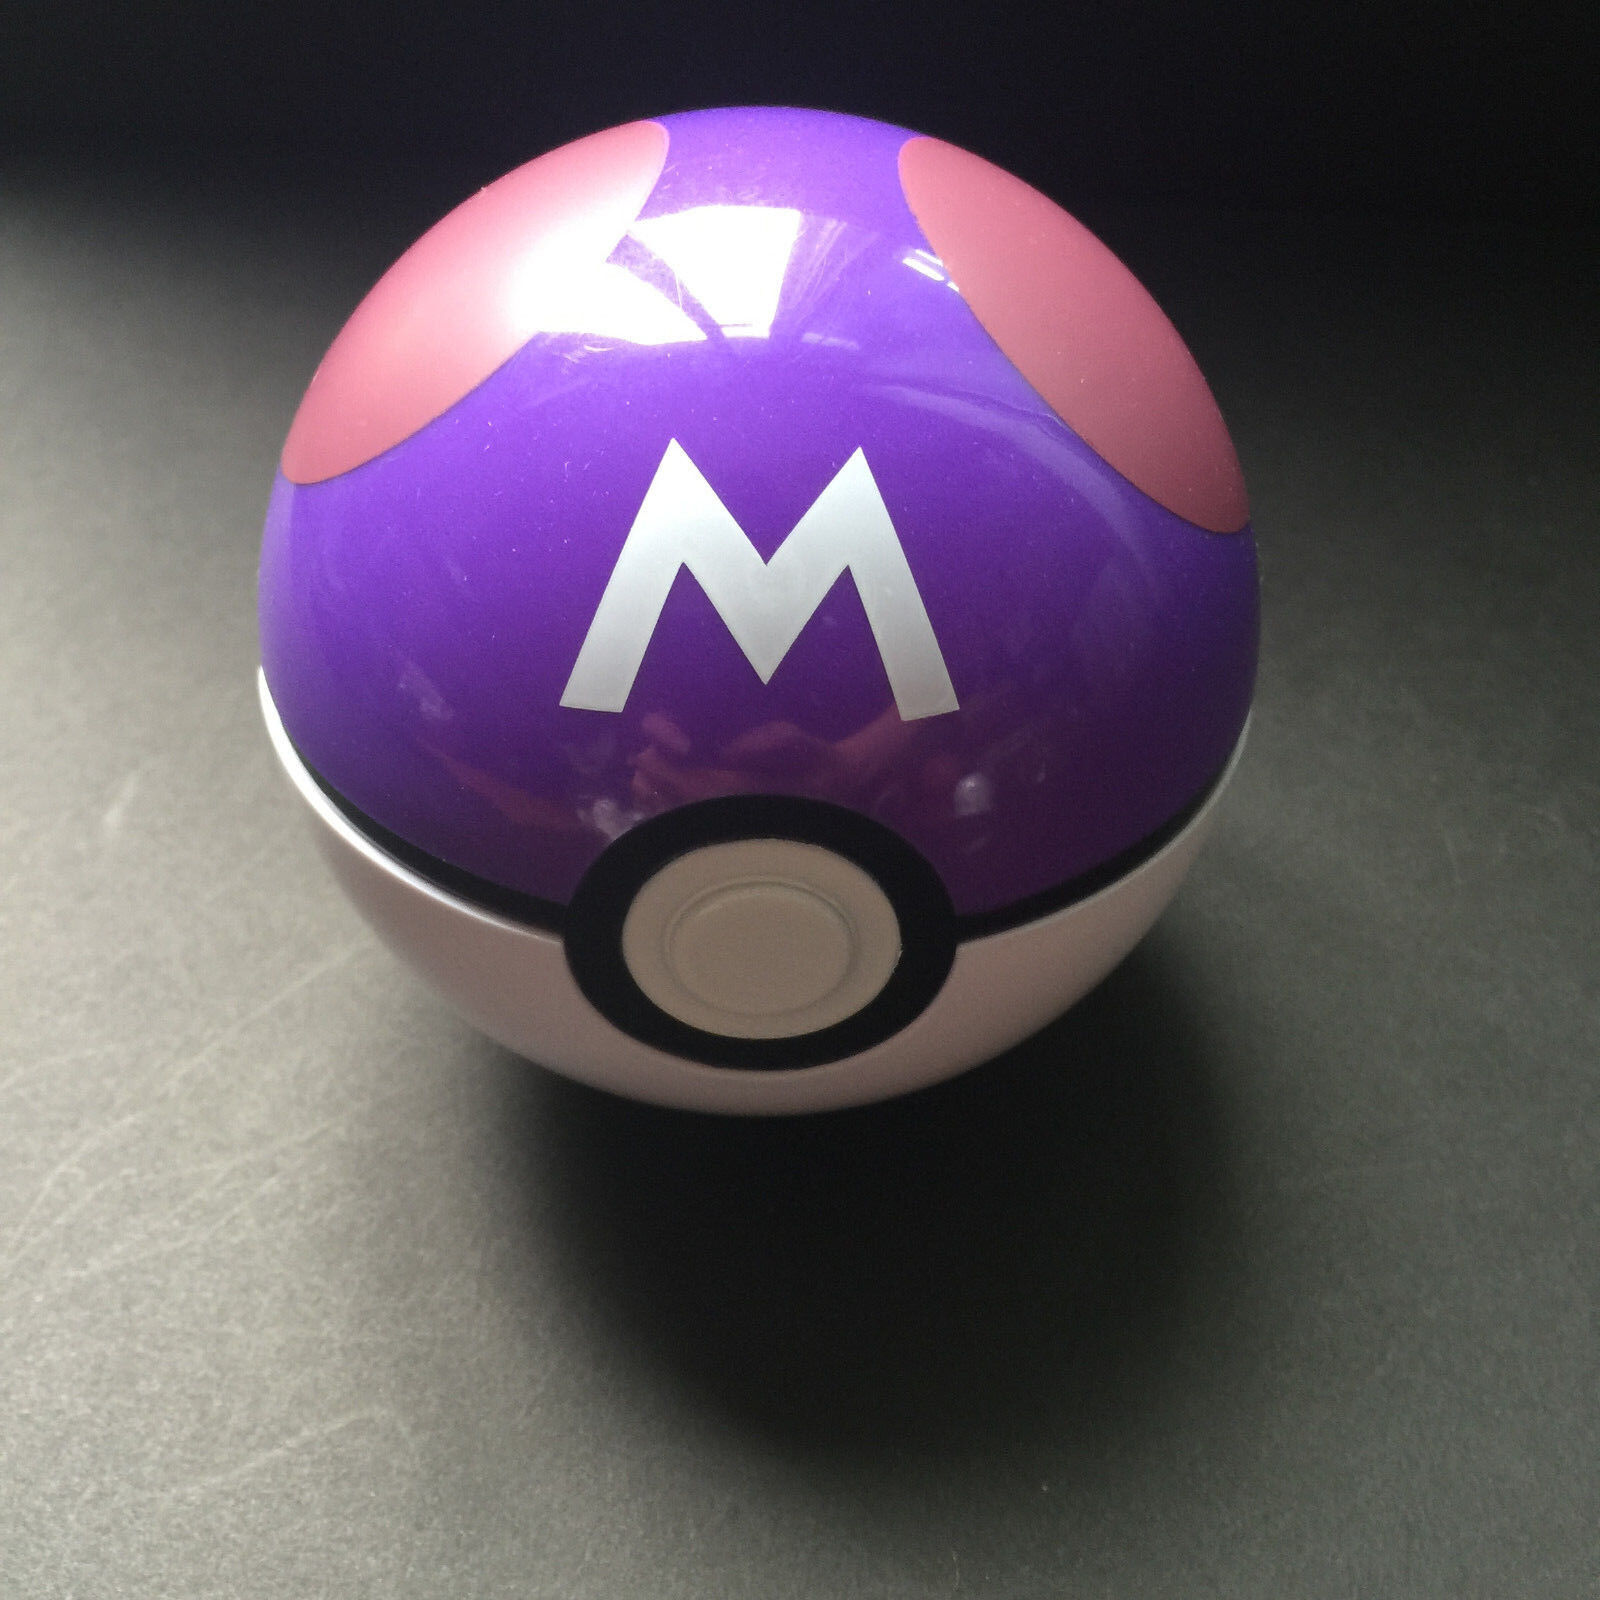 US Seller POKEMON GO Pokeball Pop-up Ball spel leksak Ash Ketchu Master Ball XXL